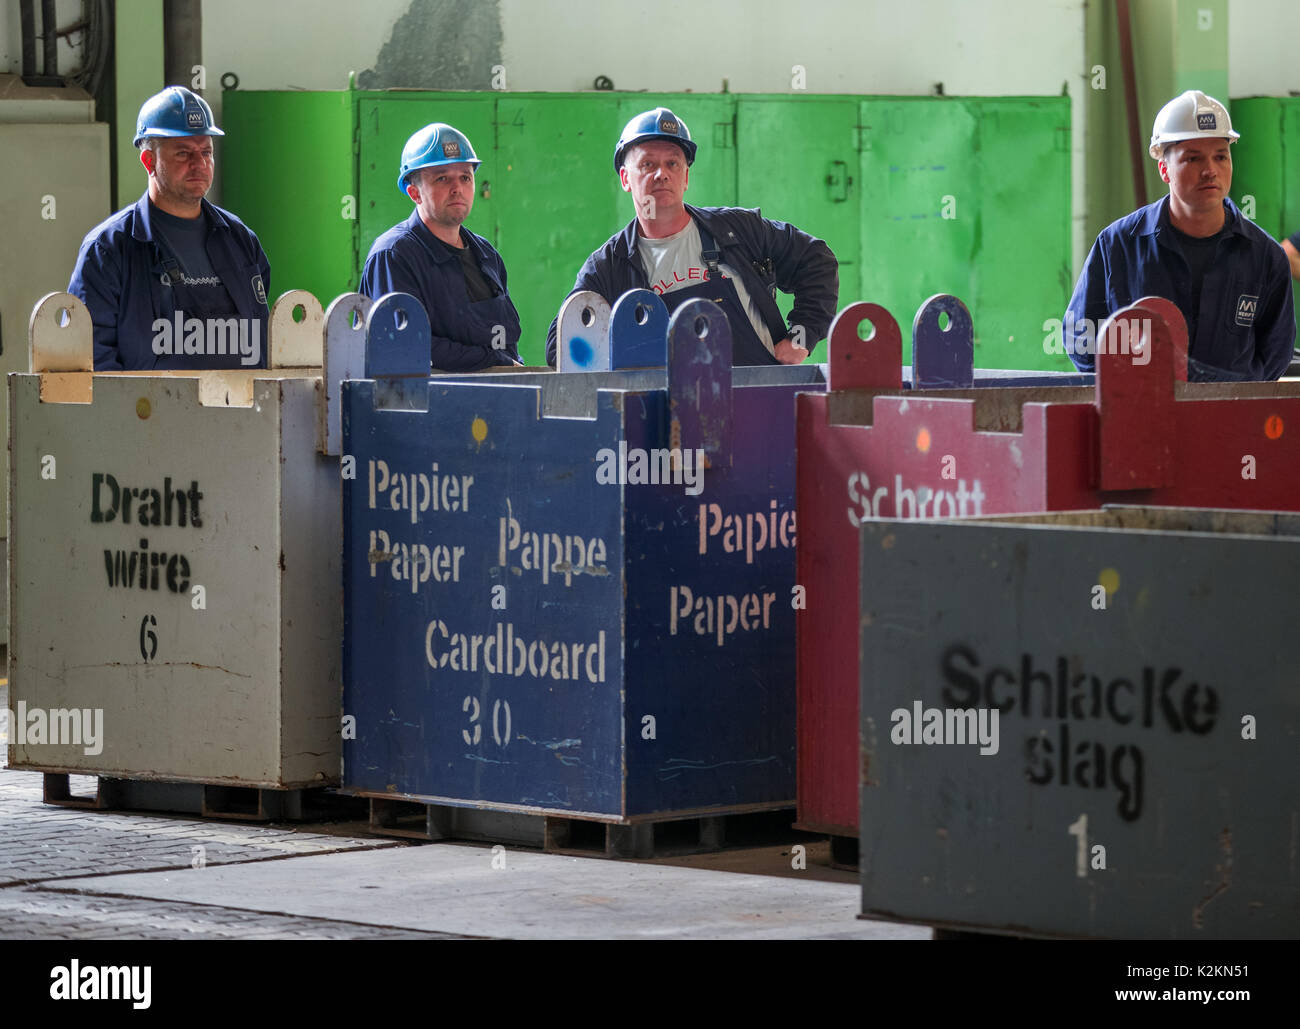 Wismar, Germany. 1st Sep, 2017. Shipyard employees watch the ceremonial start of his apprenticeship in Wismar, Germany, Stock Photo